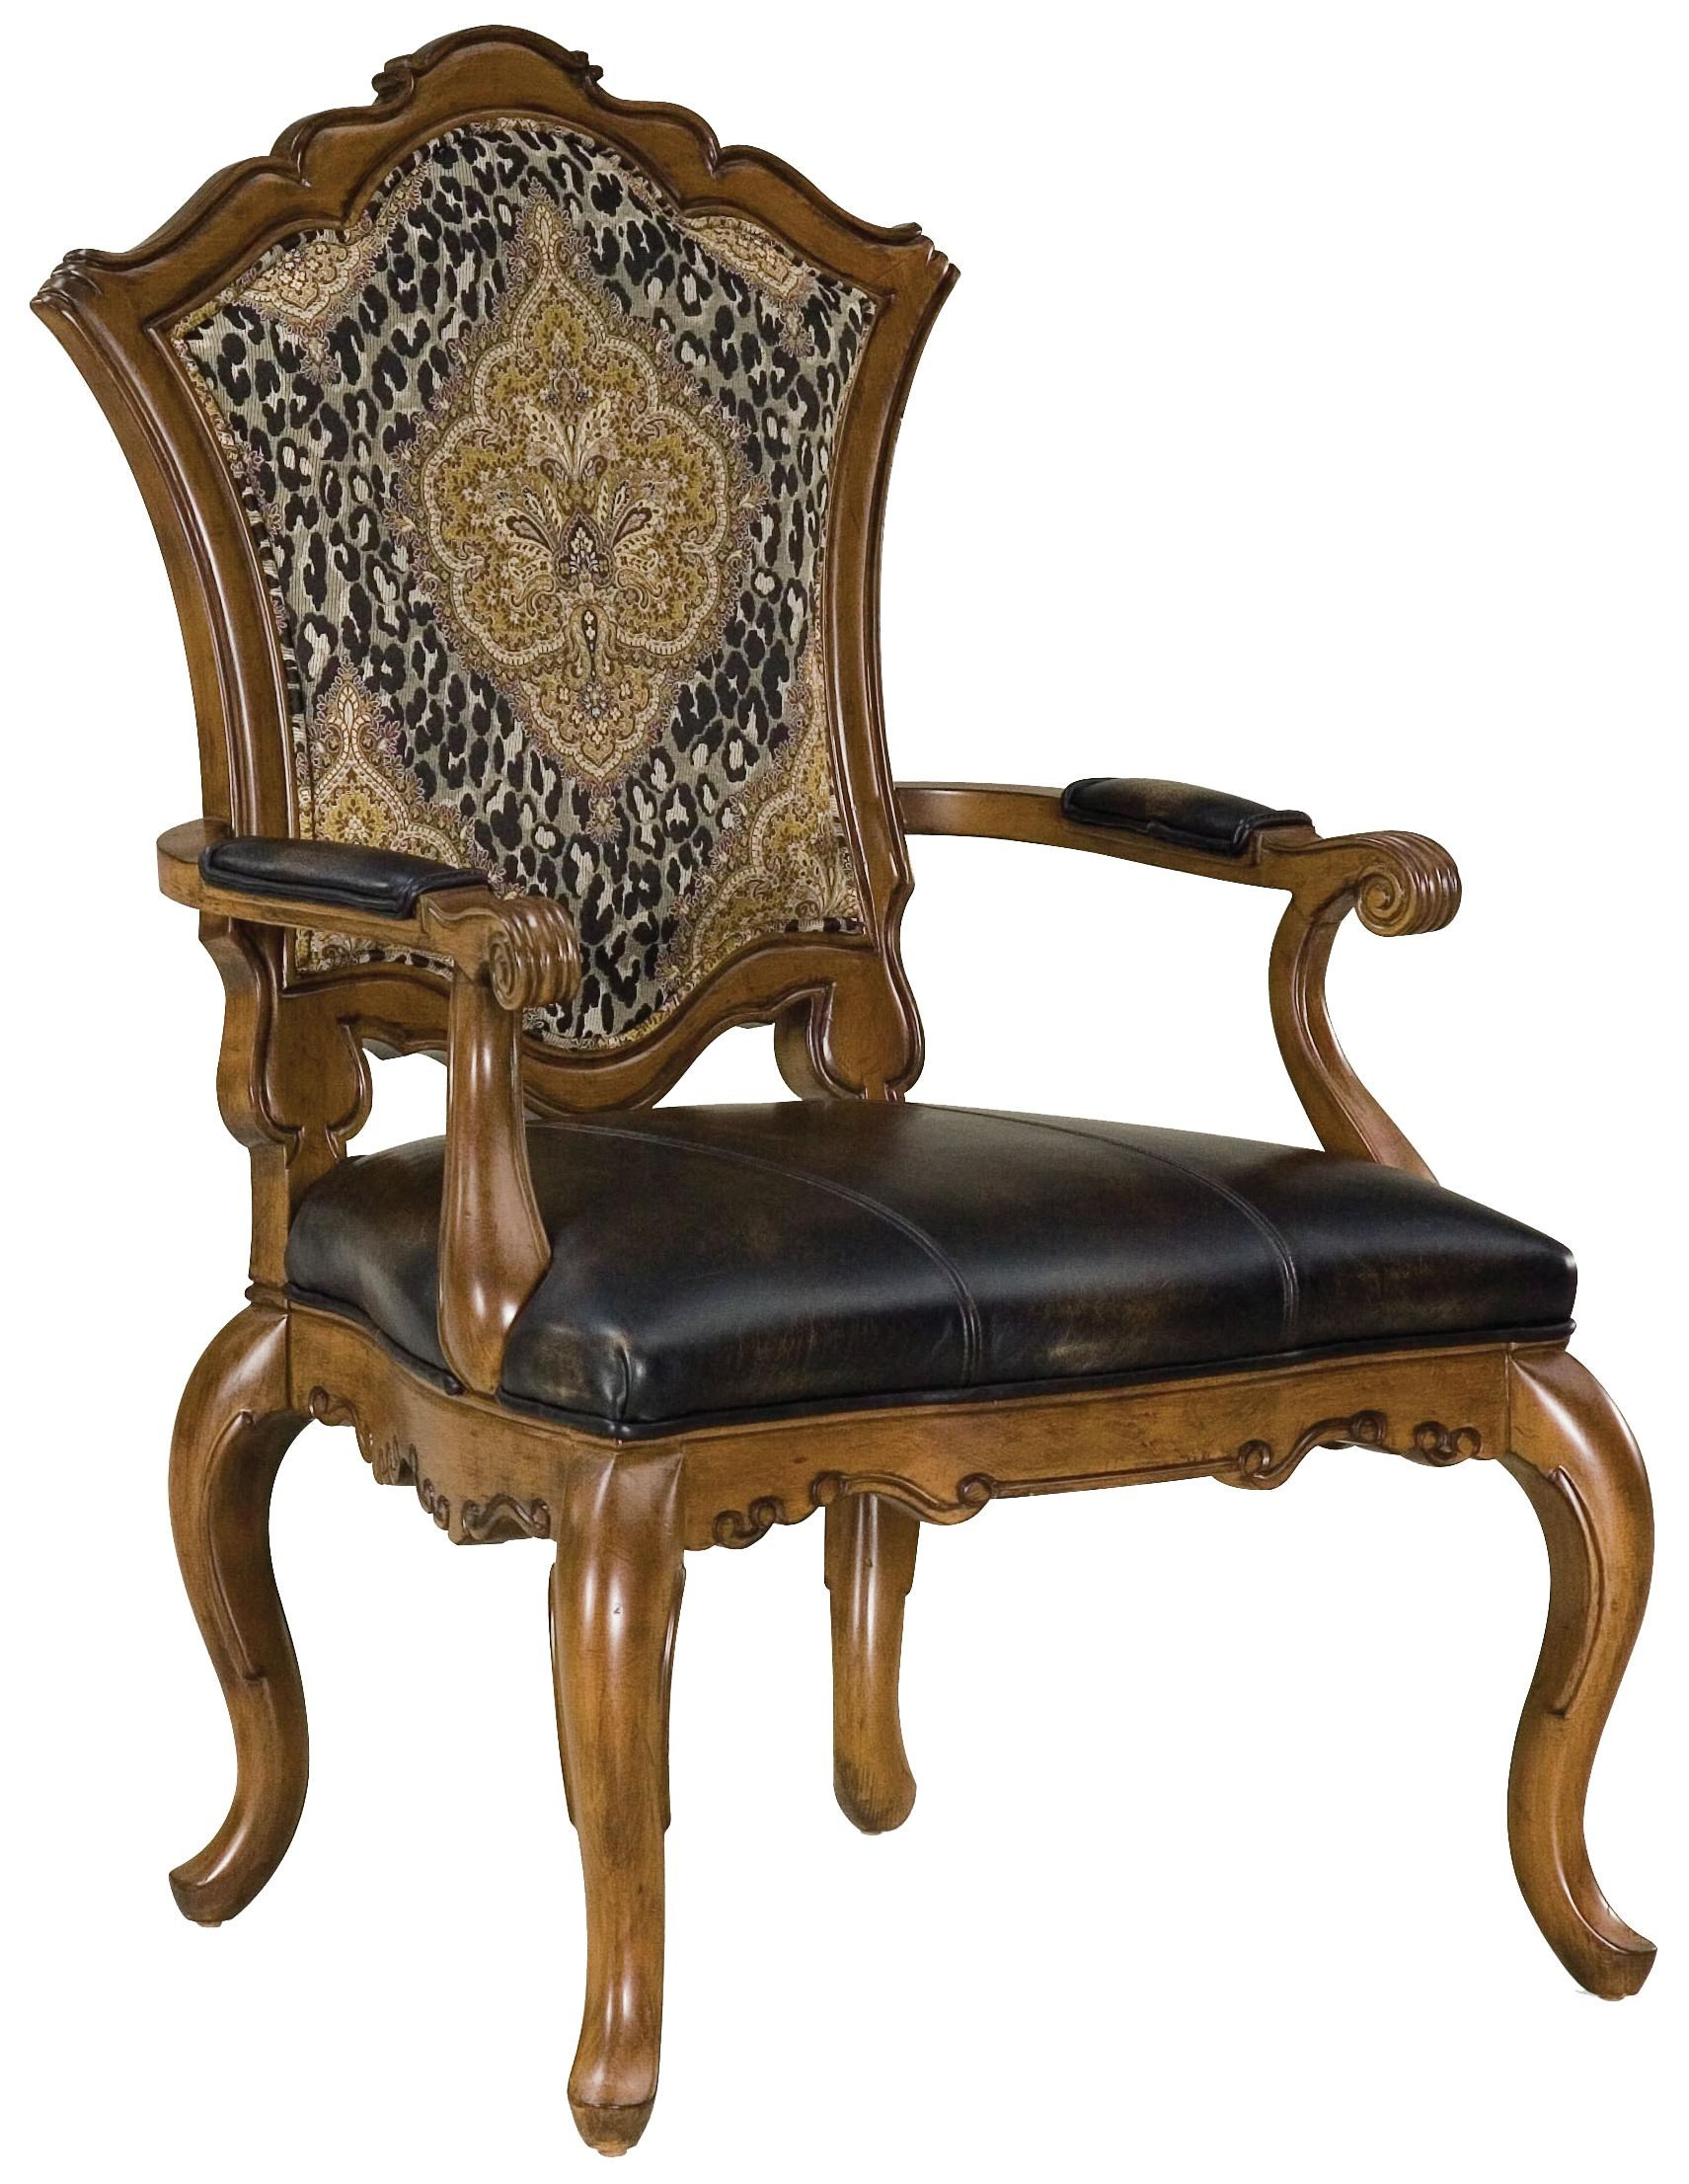 Some makers of victorian furniture are considered artists